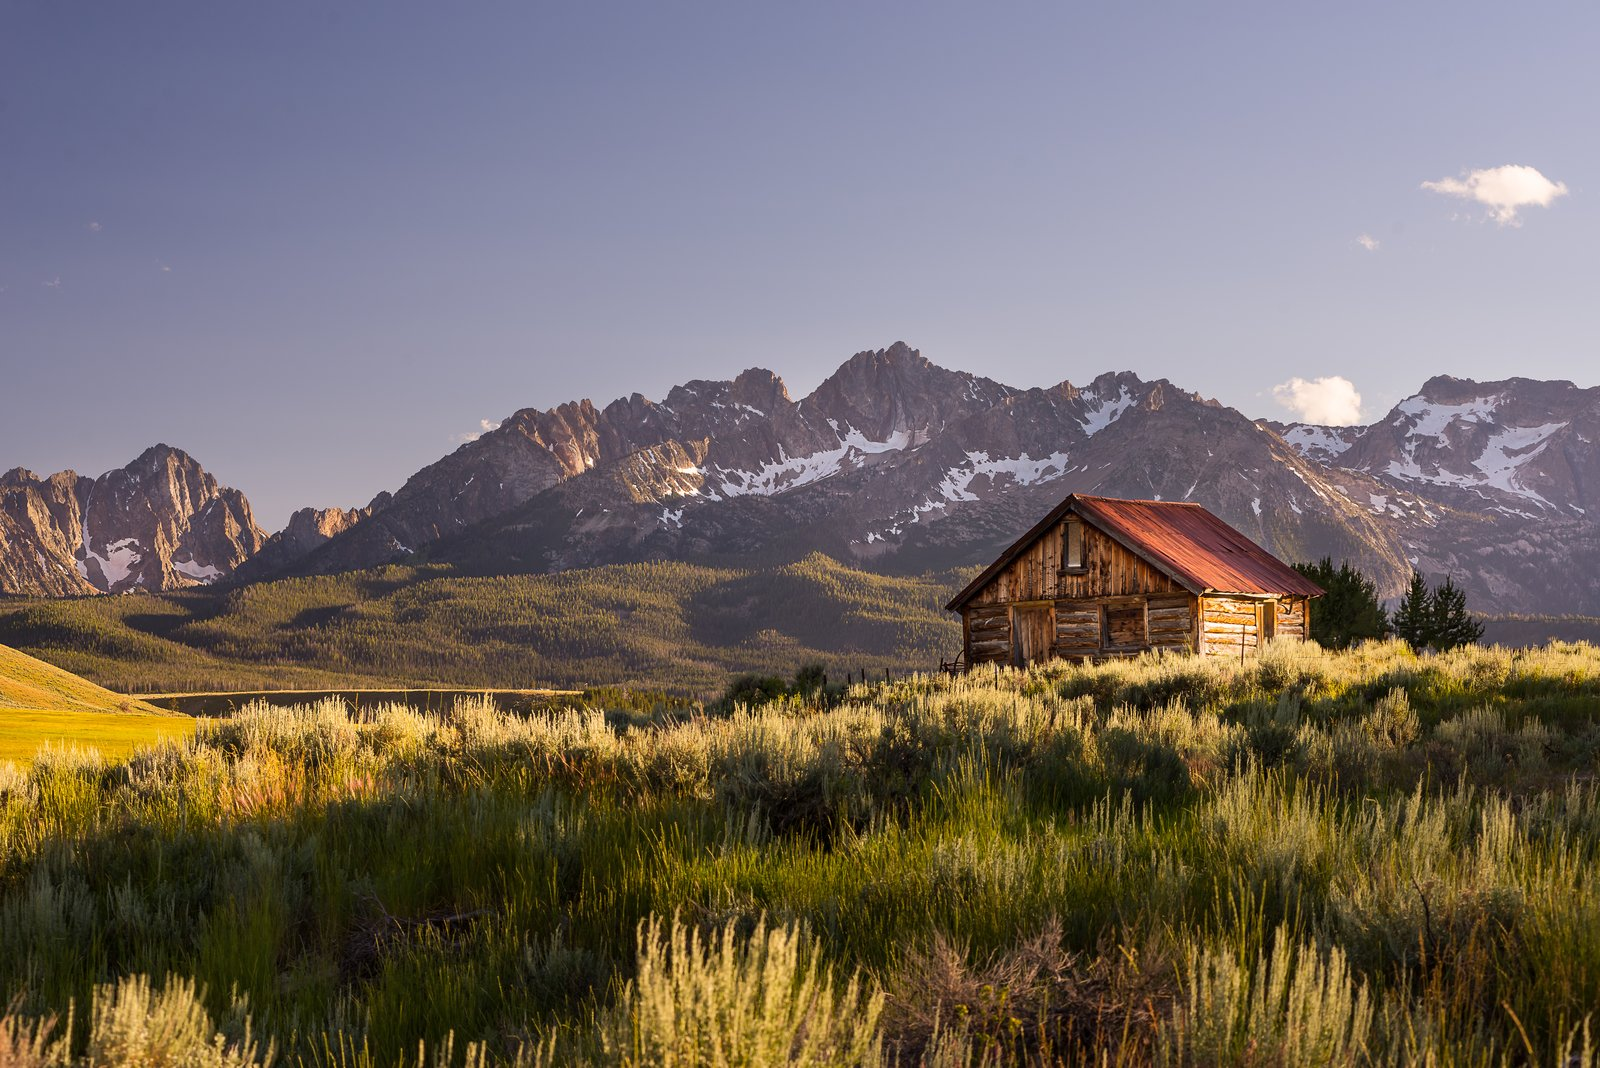 Evening light in the Sawtooth mountains of Idaho. Who wouldn't want to have a cabin here?